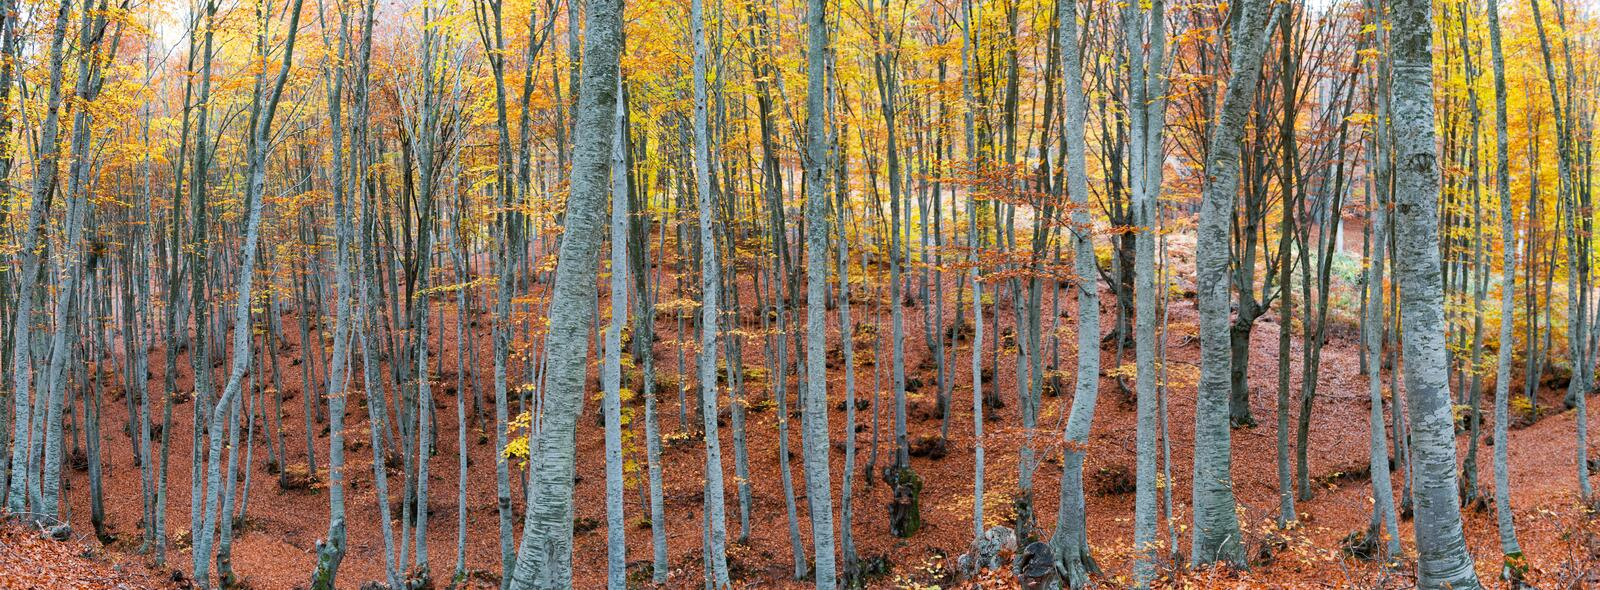 Beech forest in autumn. Colorful beech forest during autumn season stock photos